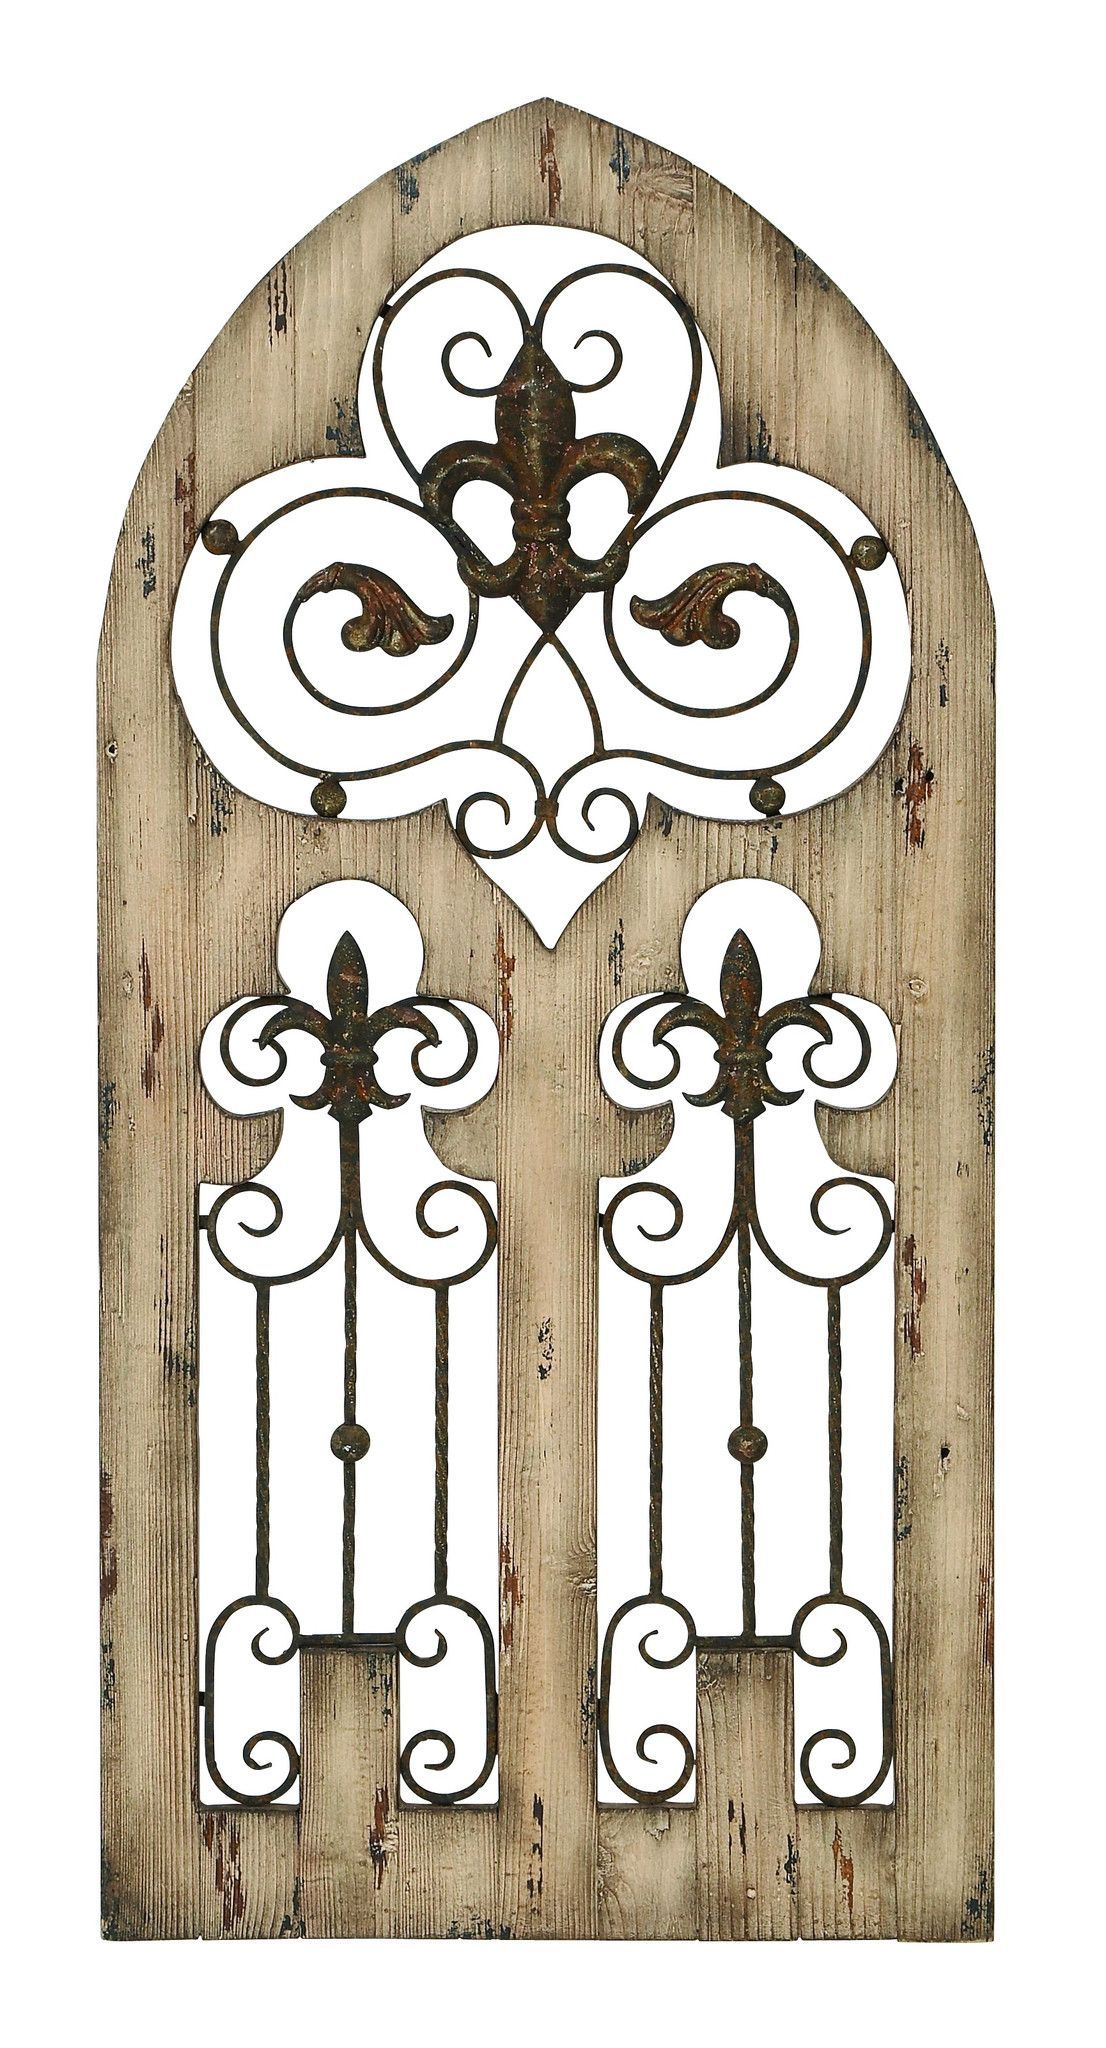 "Wood And Metal Wall Decor Wood Metal Wall Decor 50""h 24""w Wall Decor  For The Home"